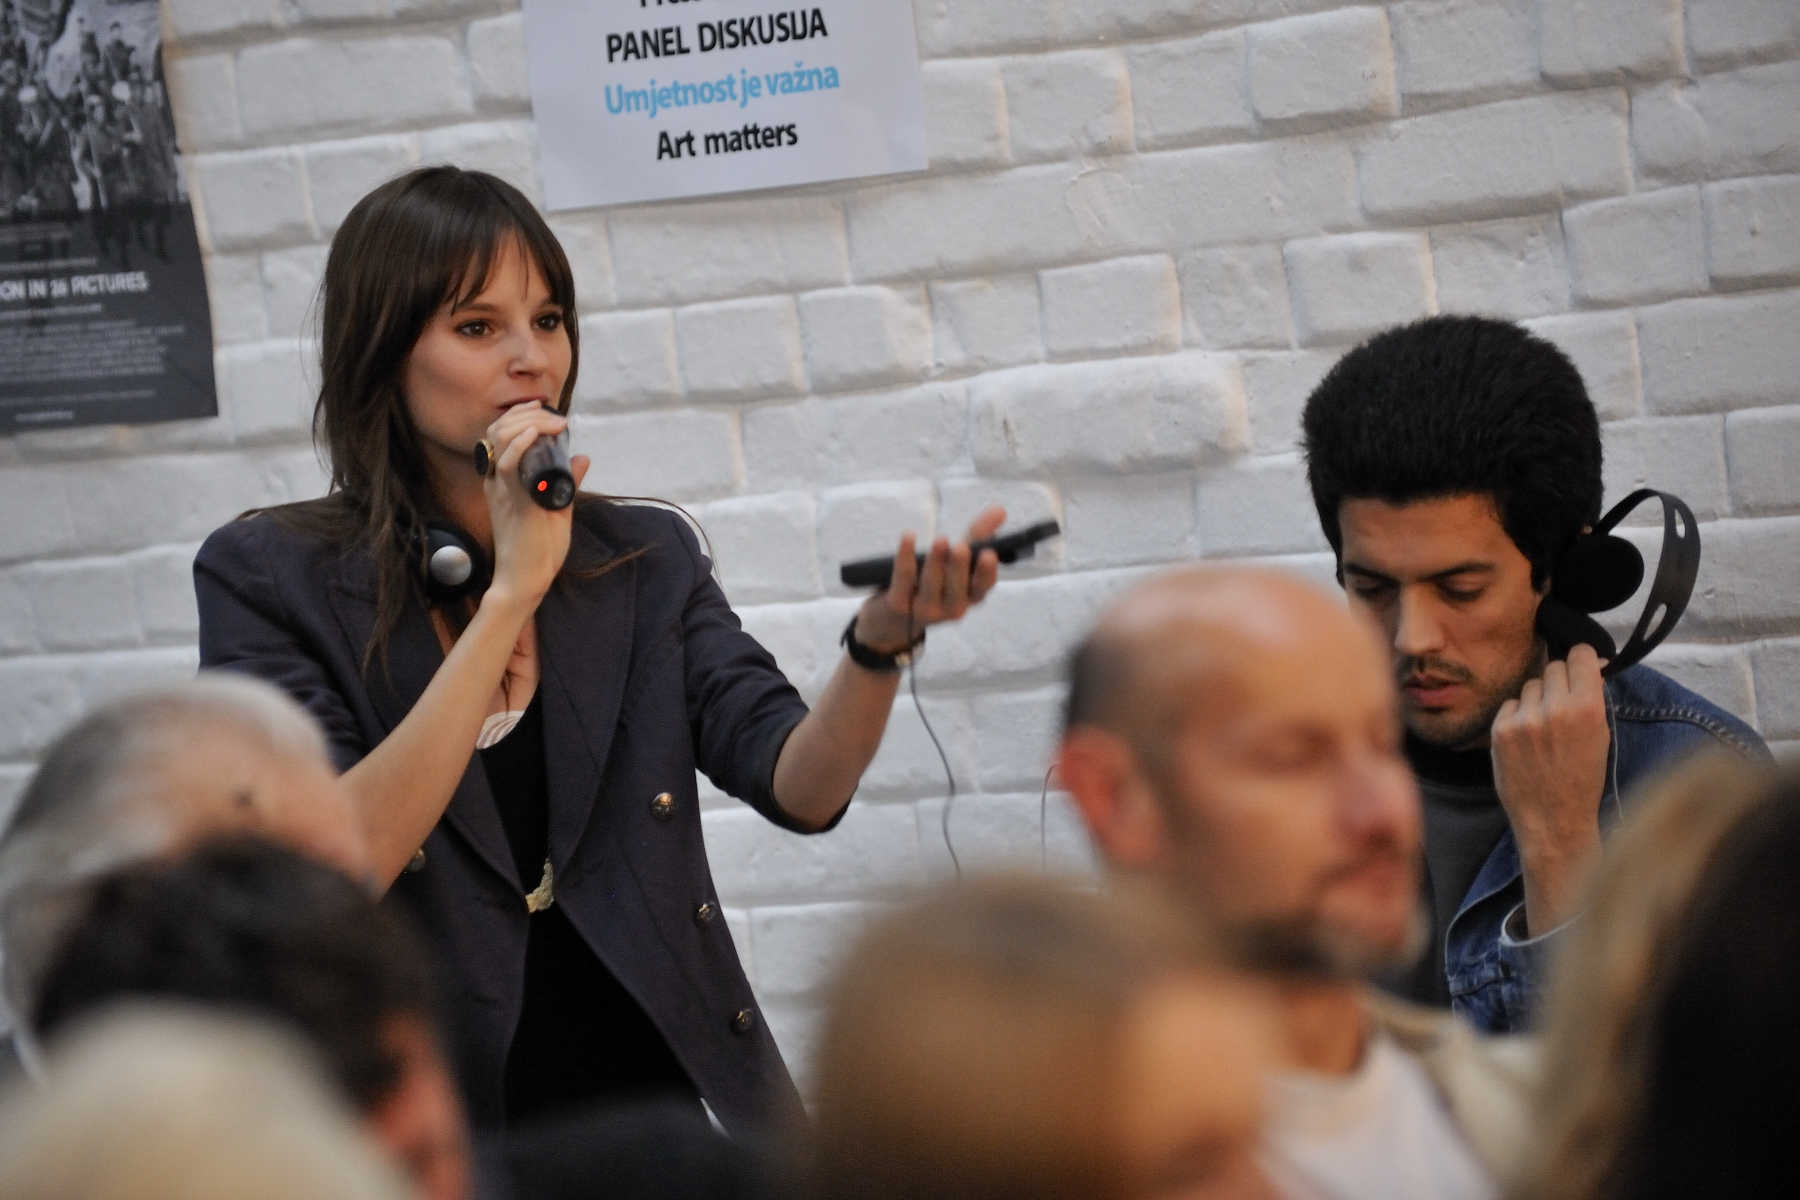 Delegate Stéphanie Lapointe, singer, also took part in the discussion.